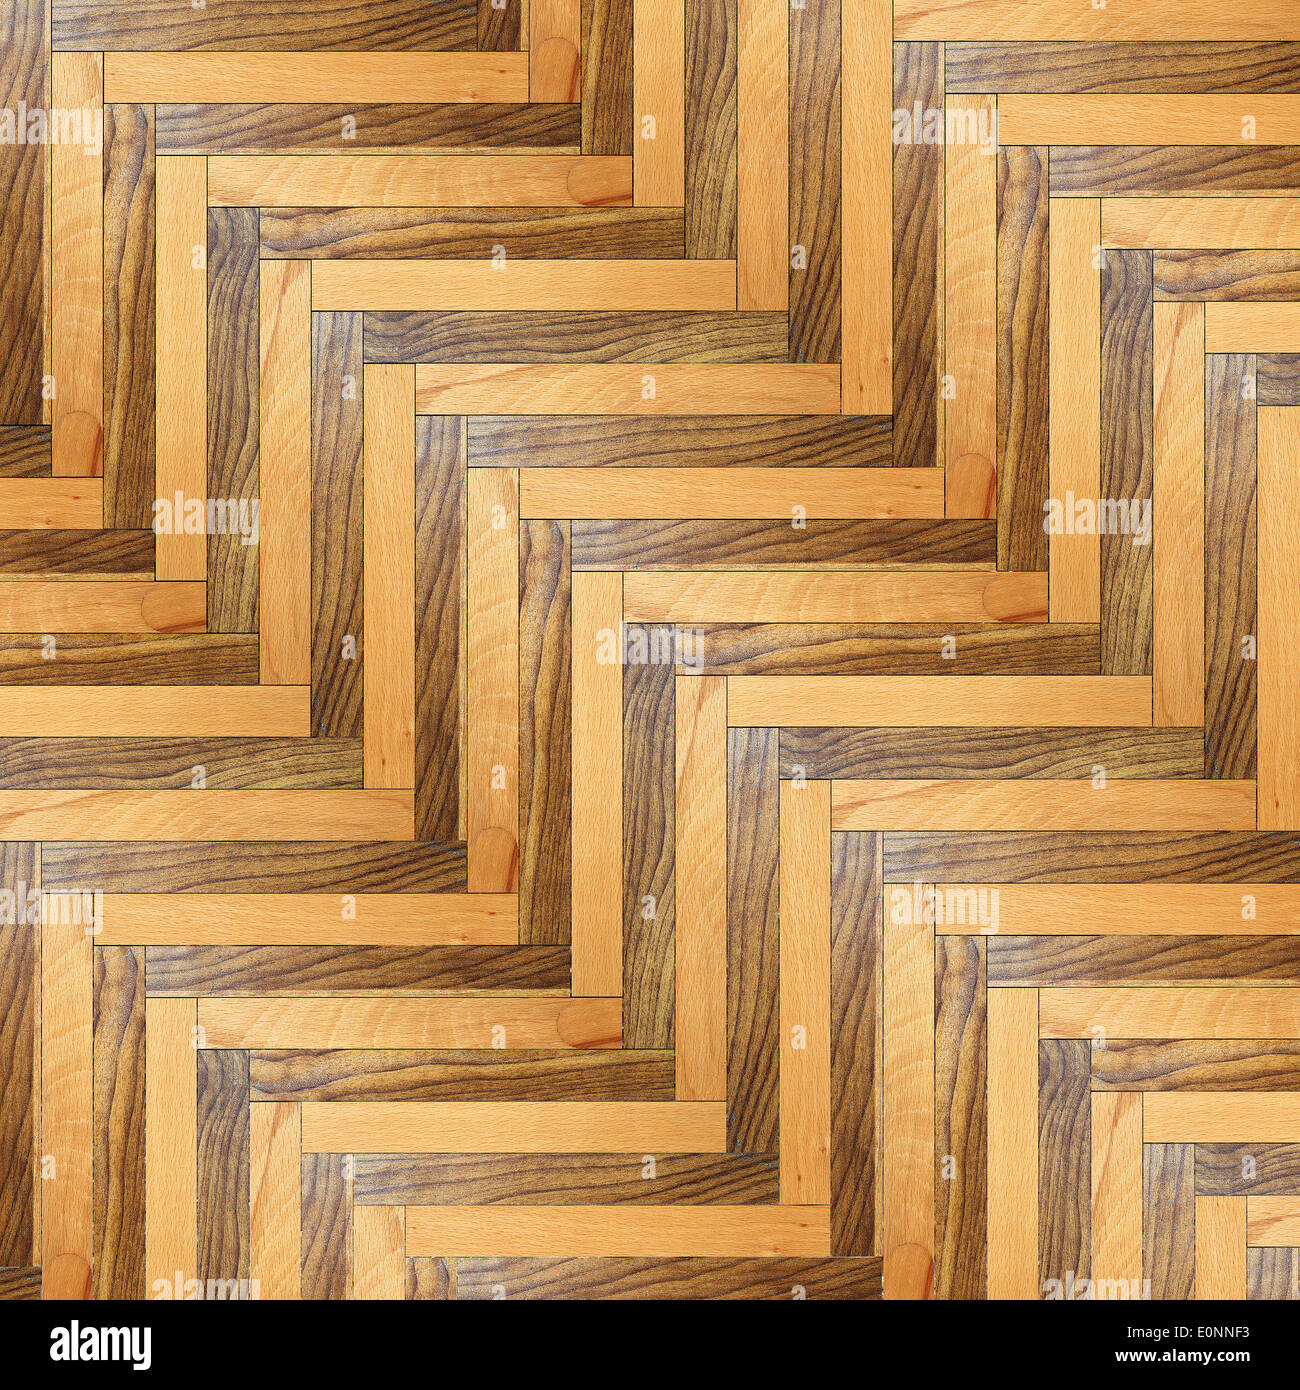 Striped Model Of Wood Floor Made From Two Different Types Of - Different Types Of Wood Floors